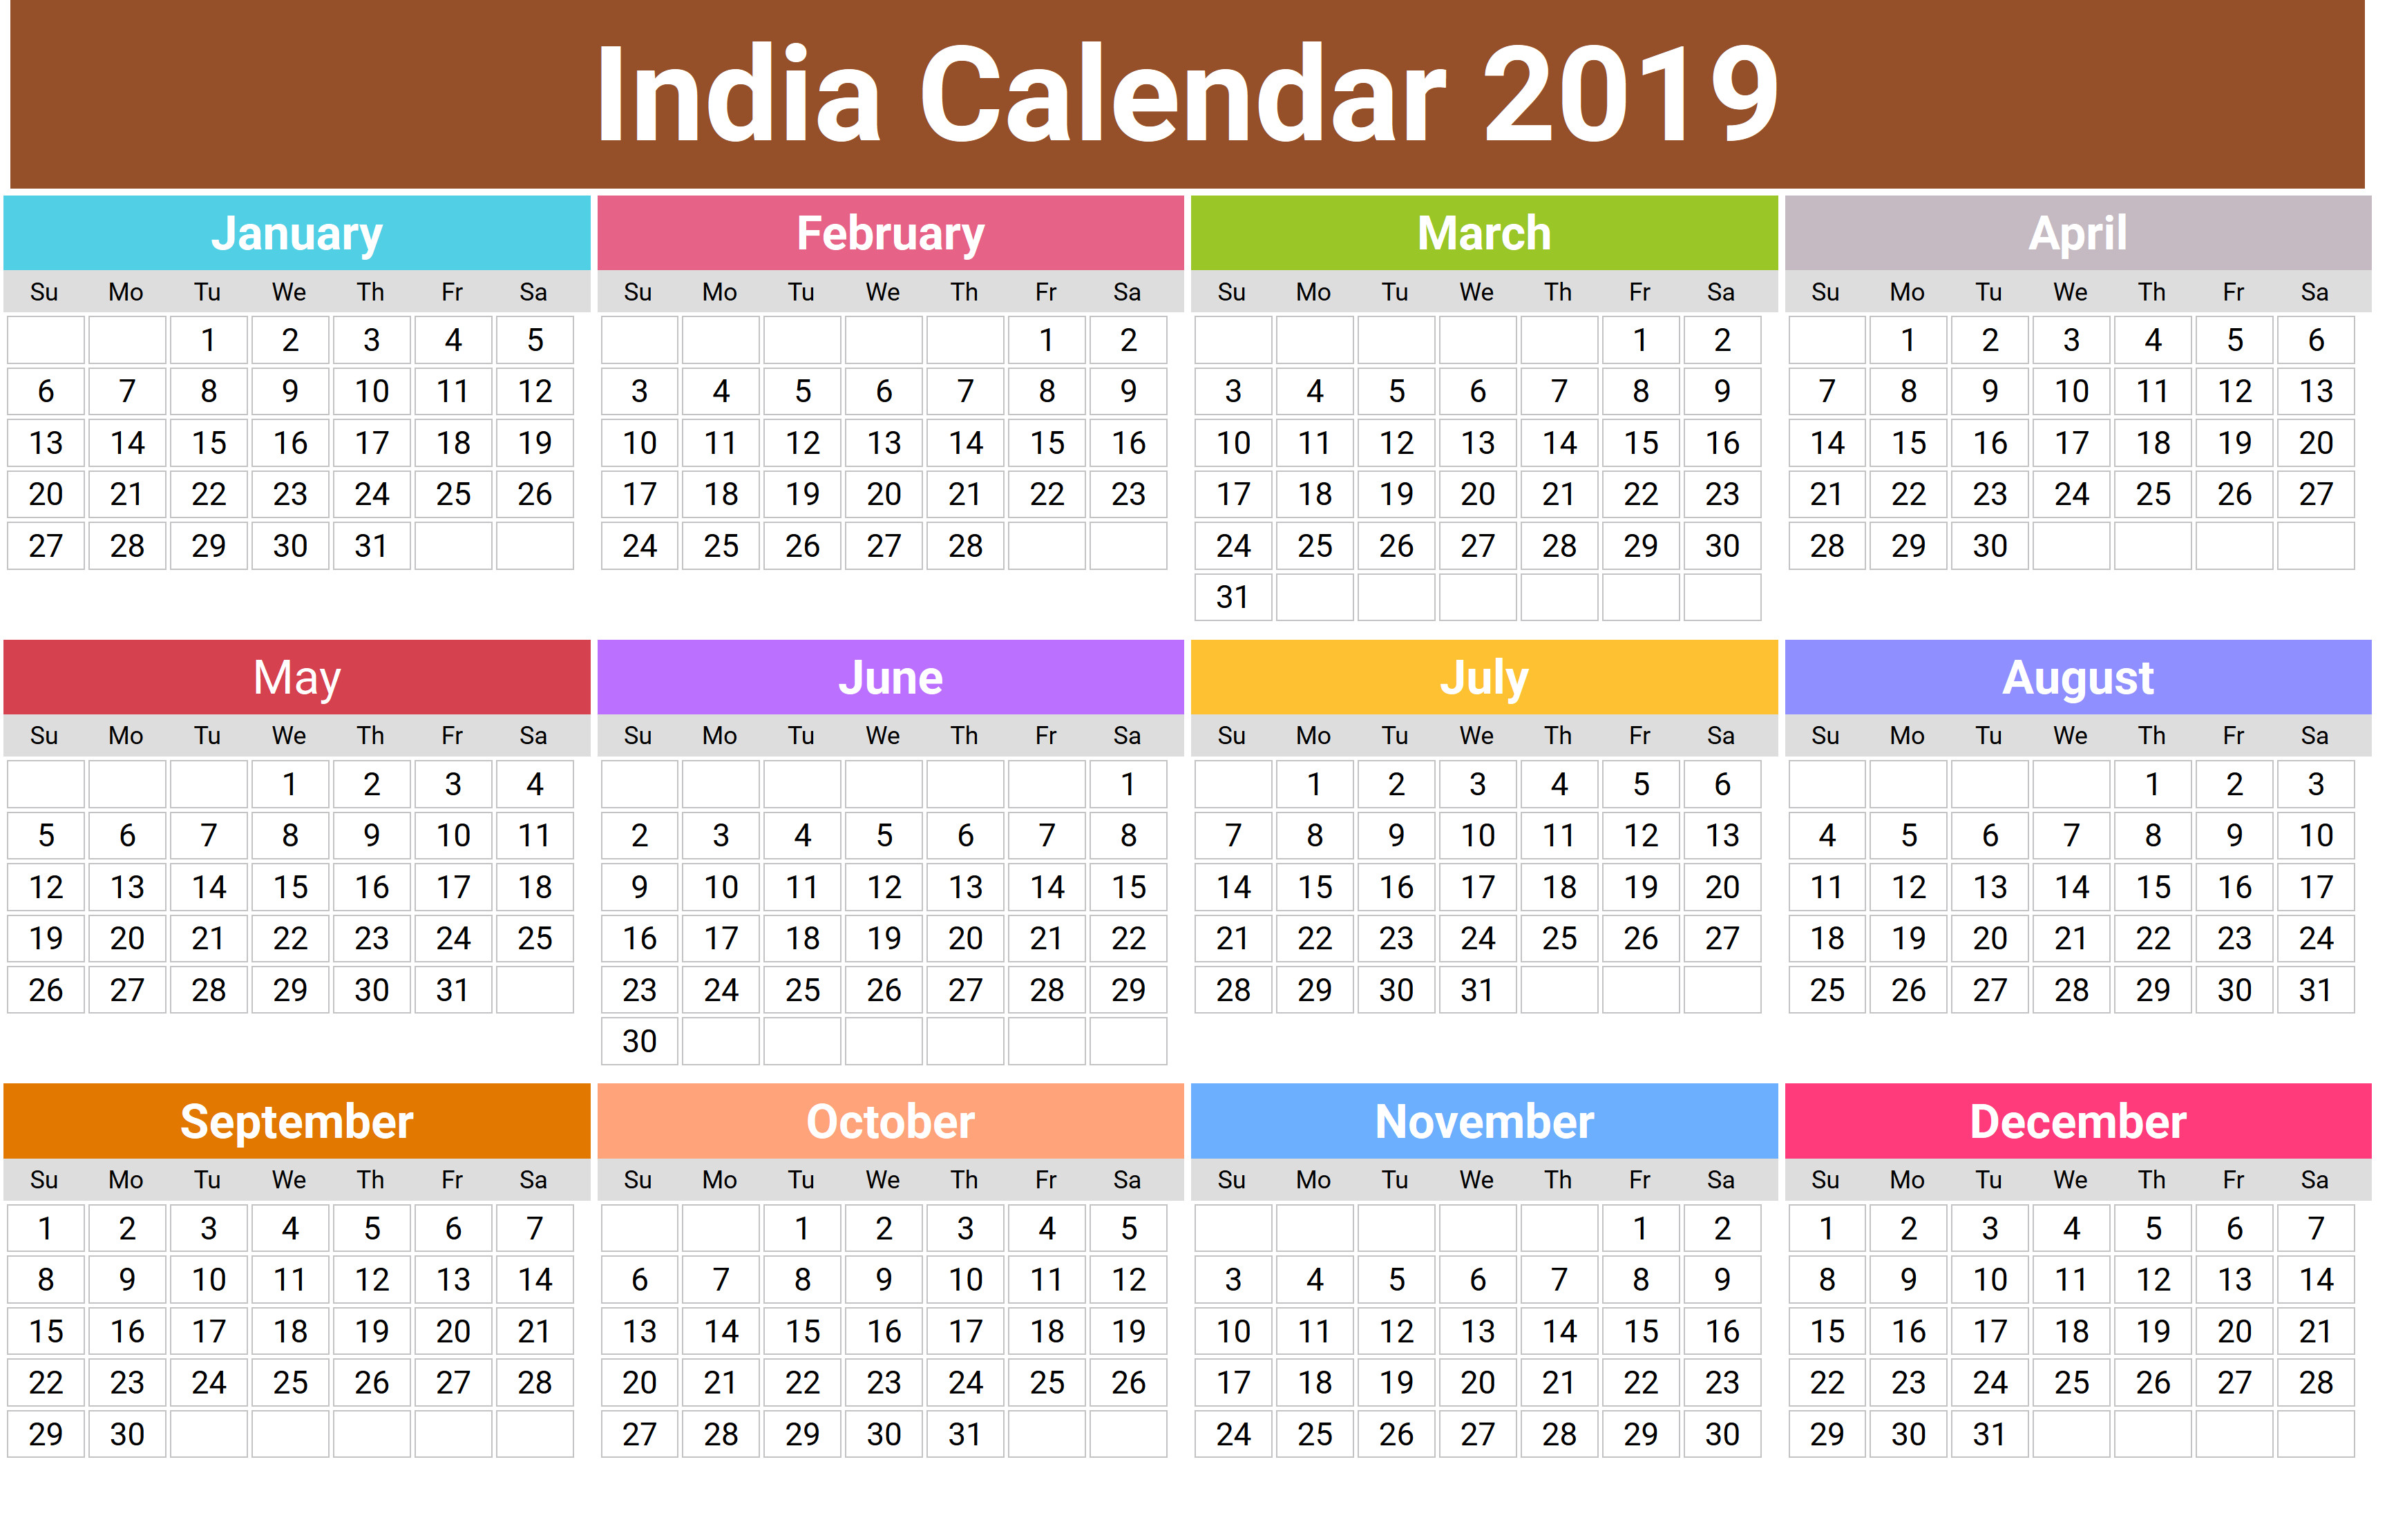 Yearly Calendar 2019 with Indian Holidays